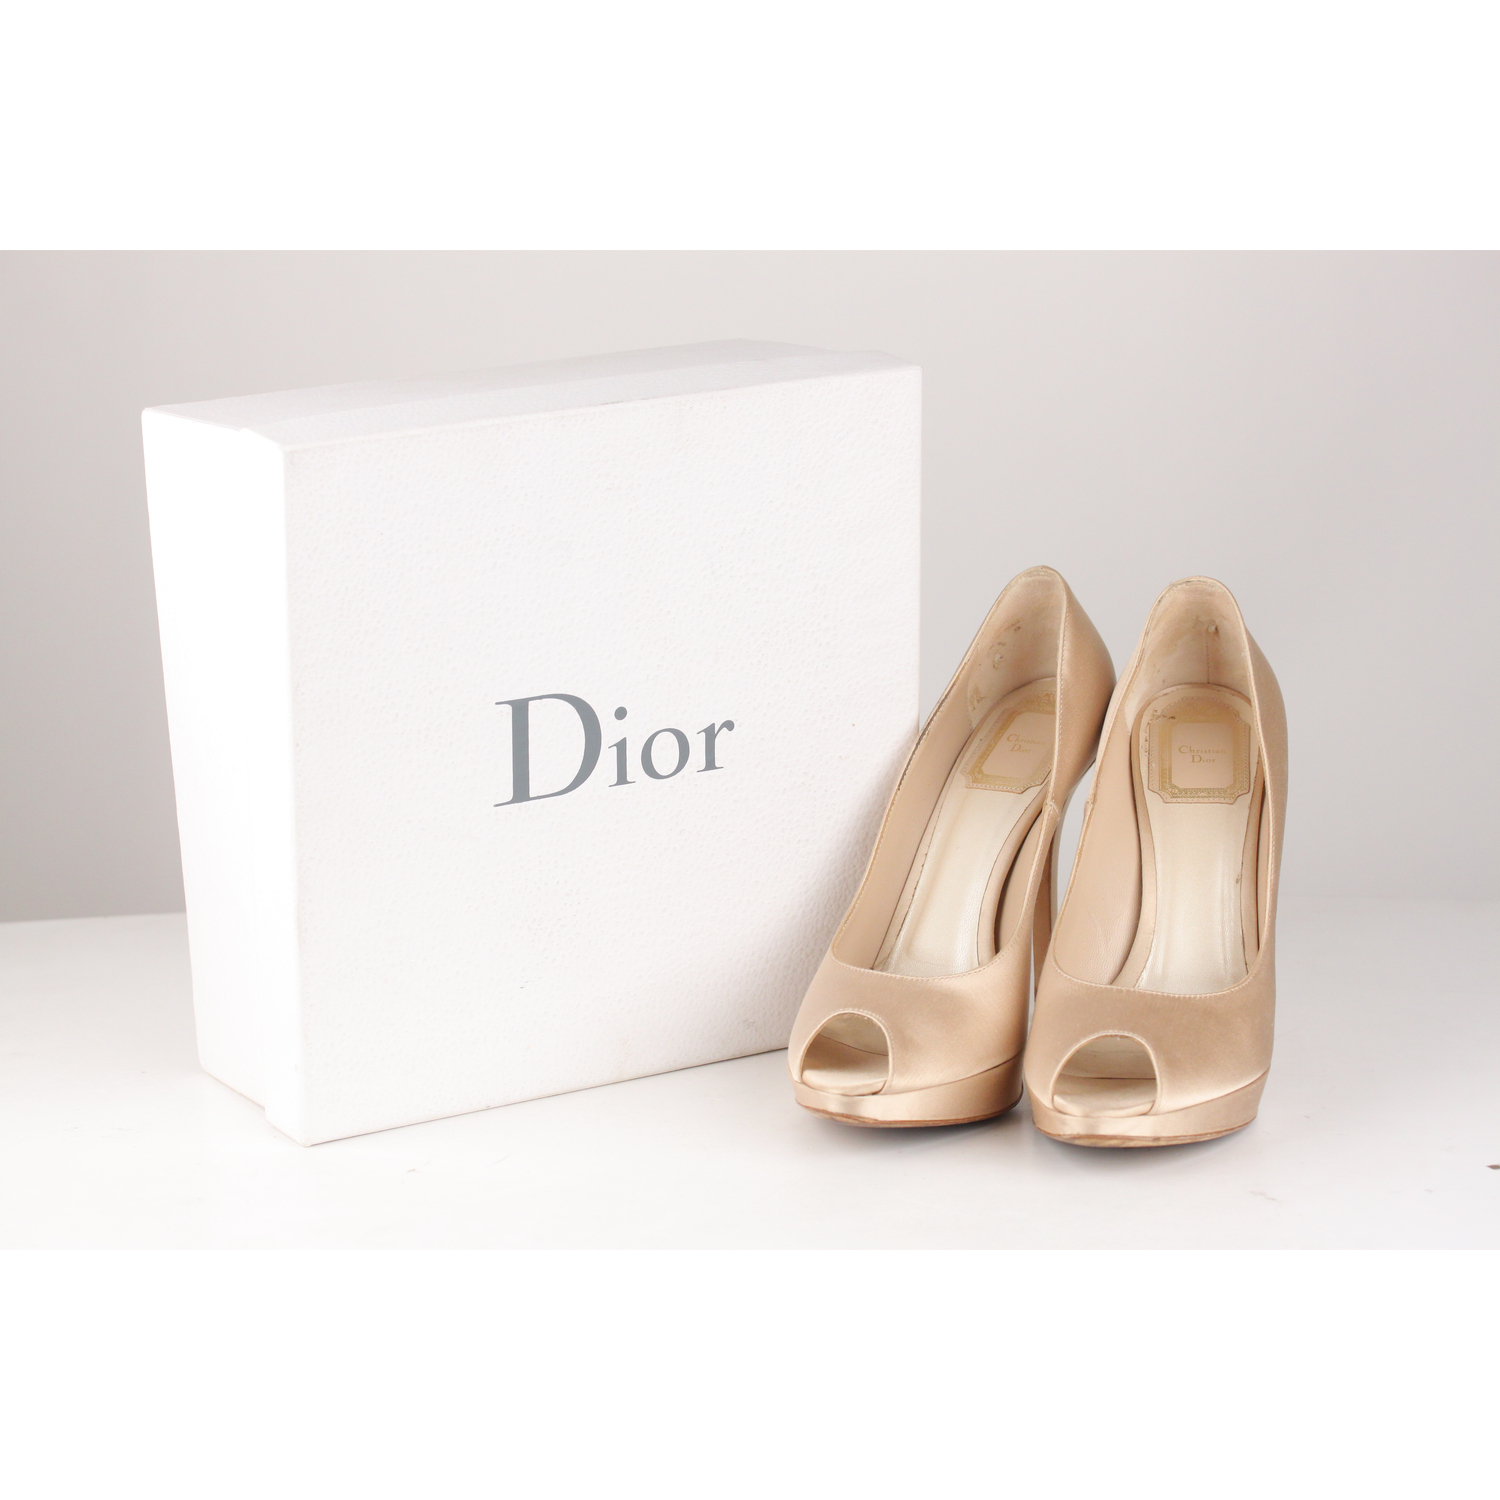 3864e980eb Christian Dior classic open toe pumps - Beige satin - Covered heels -  Almond toes - Platform - Size: 38 (The size shown for this item is the size  indicated ...